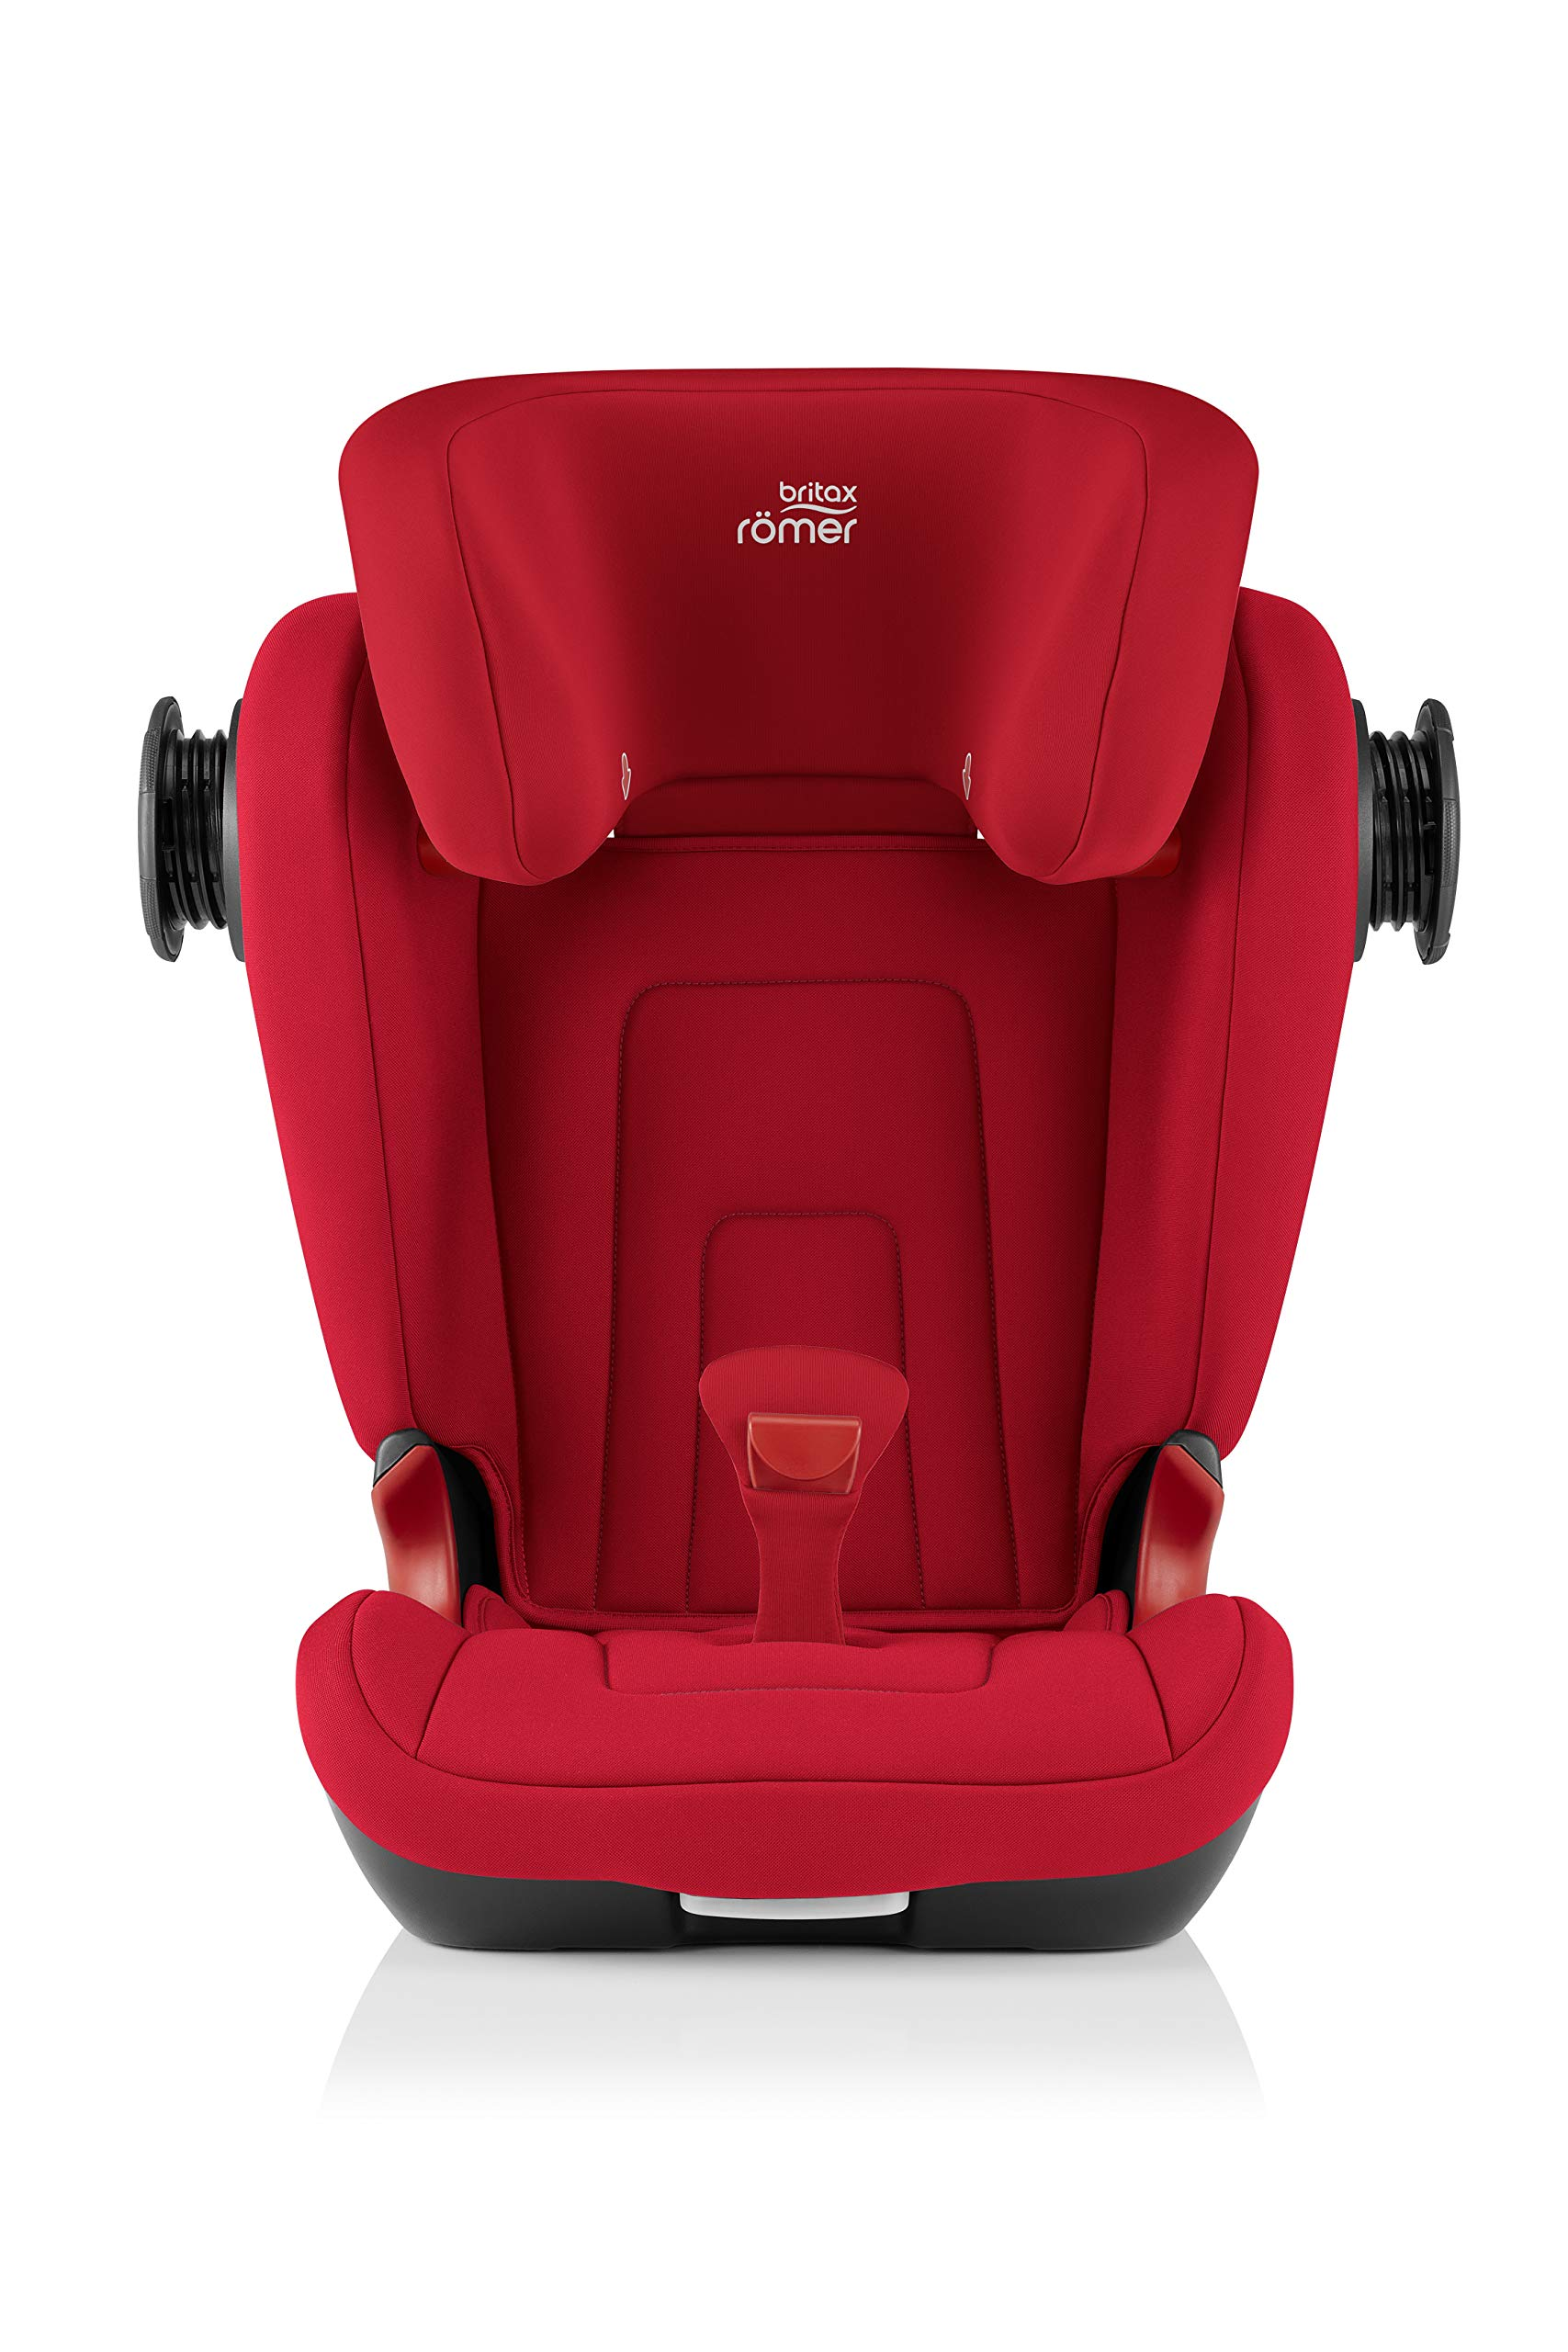 Britax Römer KIDFIX² S Group 2-3 (15-36kg) Car Seat - Fire Red Britax Römer Advanced side impact protection - sict offers superior protection to your child in the event of a side collision. reducing impact forces by minimising the distance between the car and the car seat. Secure guard - helps to protect your child's delicate abdominal area by adding an extra - a 4th - contact point to the 3-point seat belt. High back booster - protects your child in 3 ways: provides head to hip protection; belt guides provide correct positioning of the seat belt and the padded headrest provides safety and comfort. 6